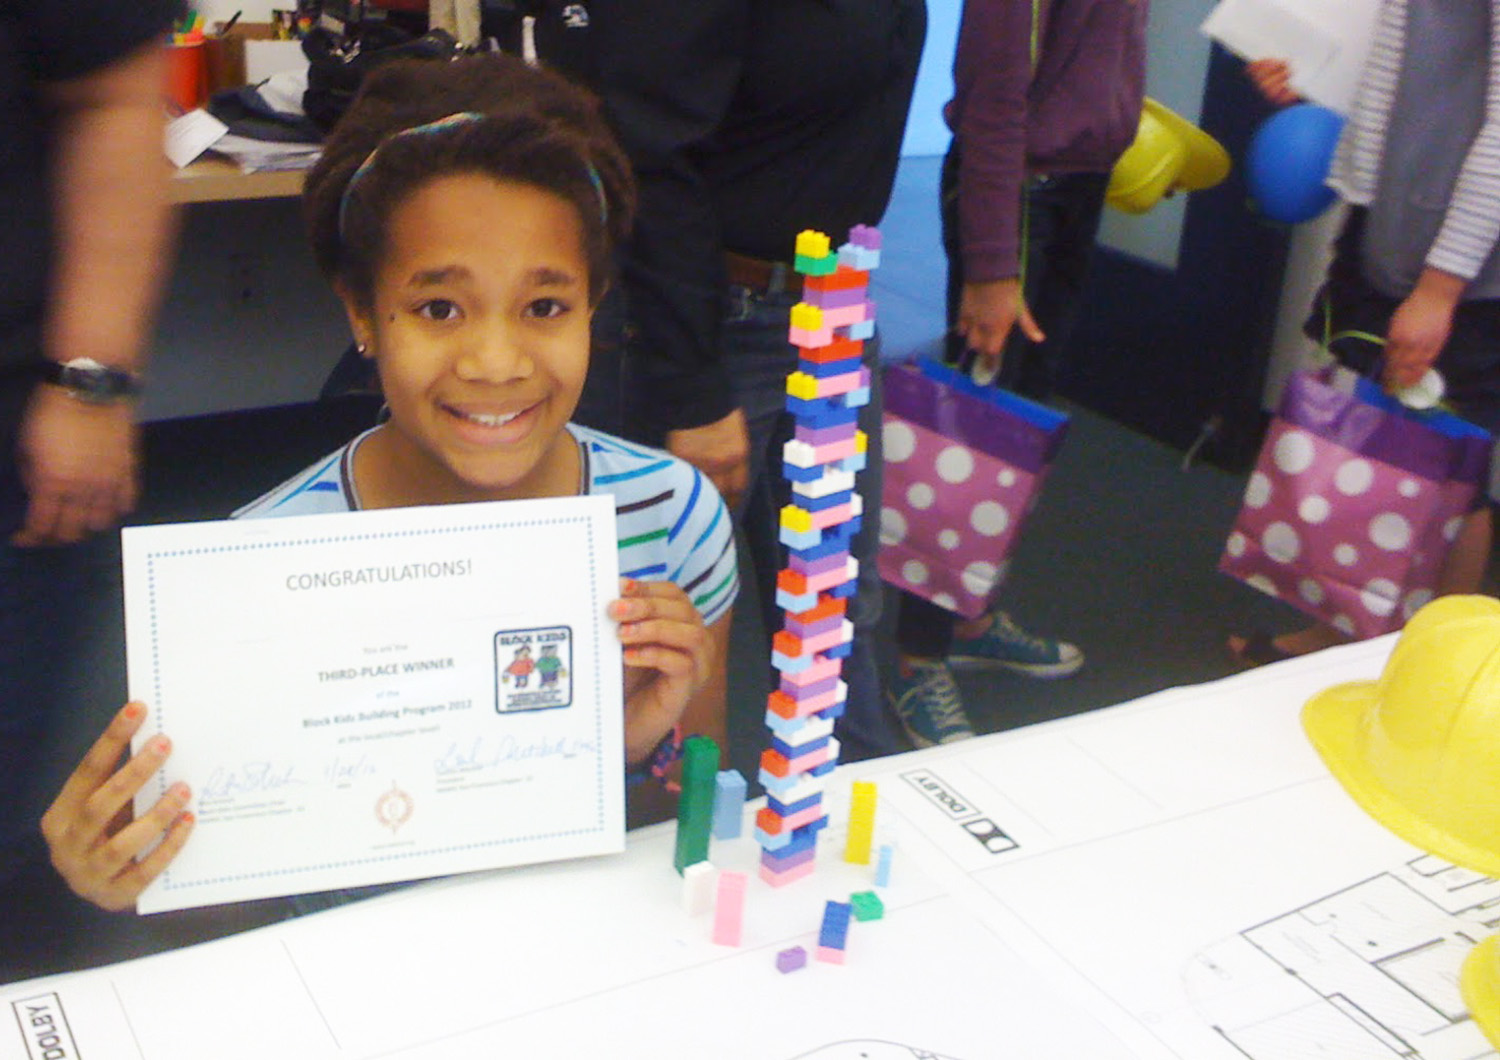 Katherine's daughter celebrates competition at the 2012 San Francisco NAWIC/Girl Scout Building Block day